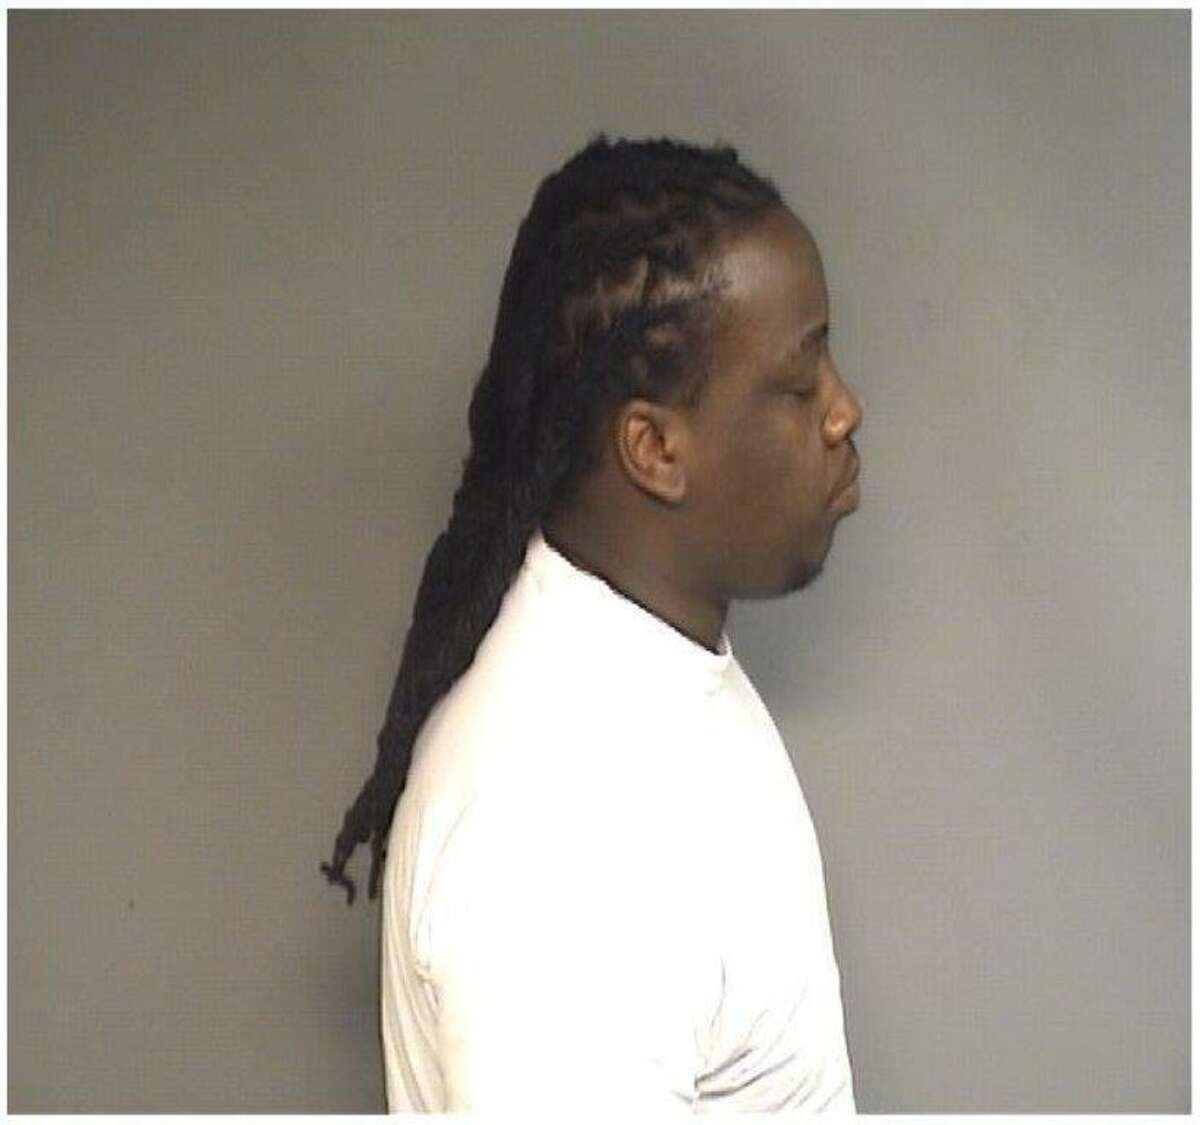 Stamford police again arrested convicted felon Caleeb Brown on gun and drug dealing charges Thursday.